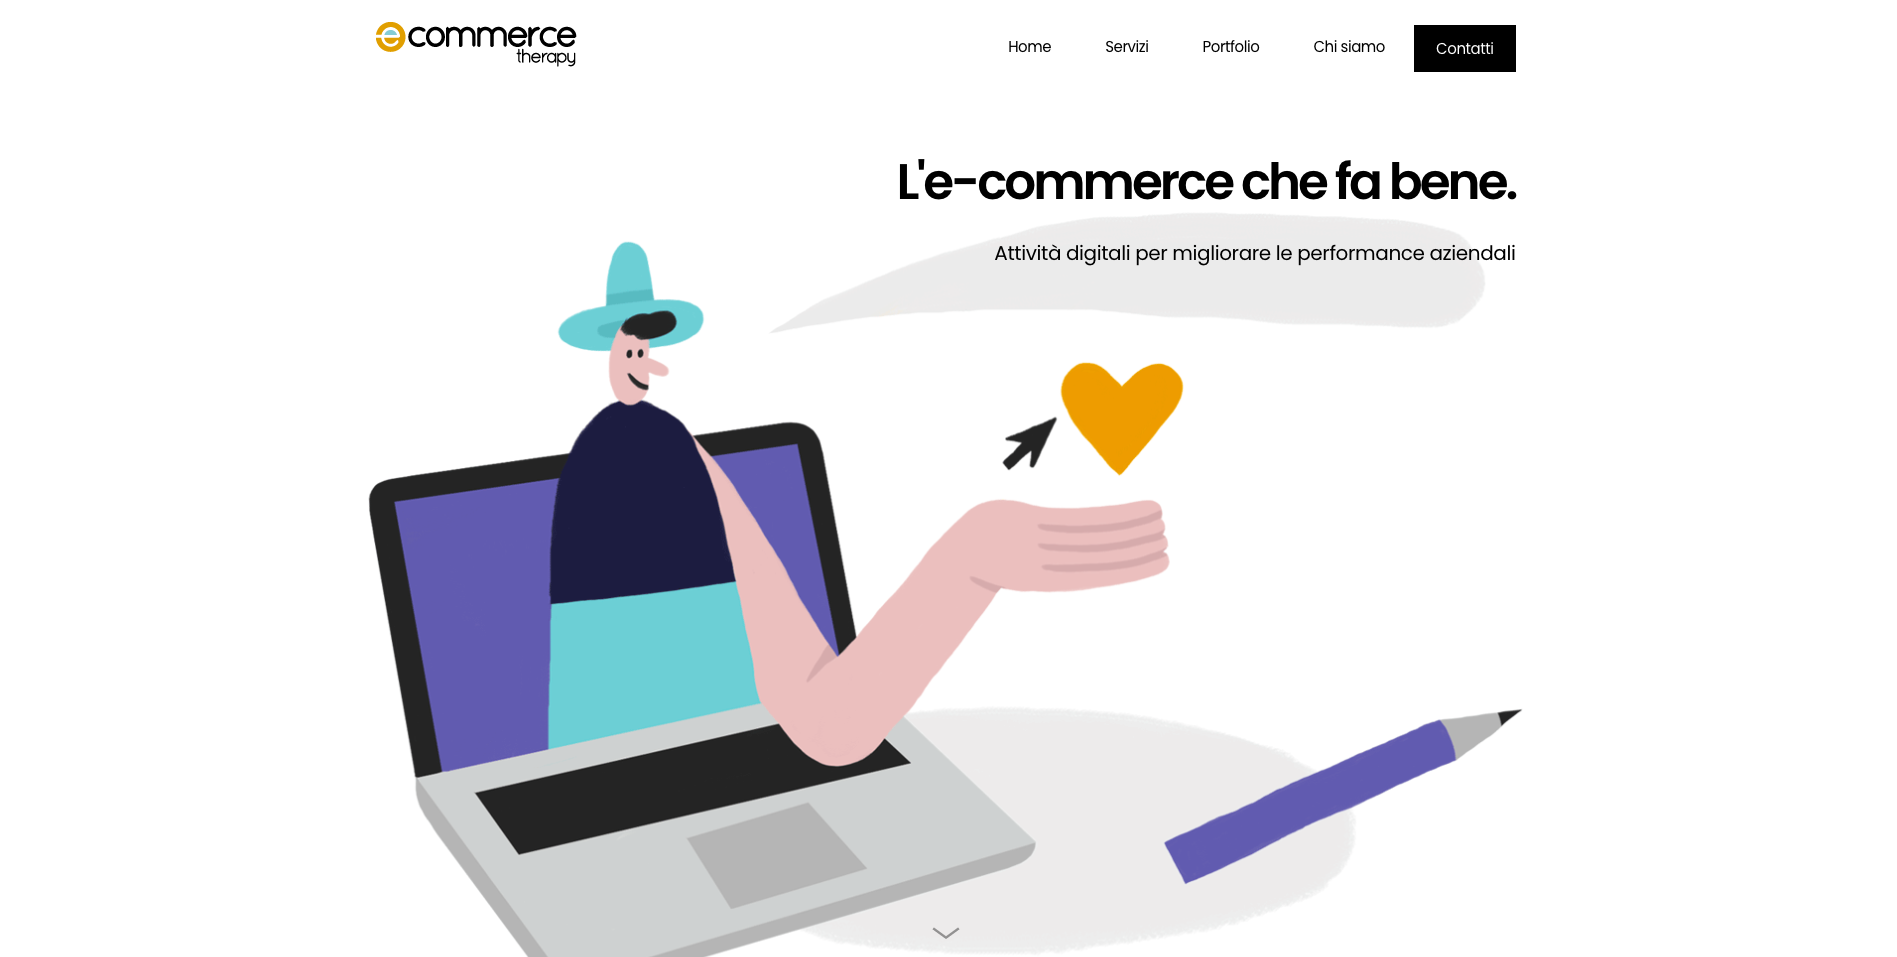 Ecommerce Therapy